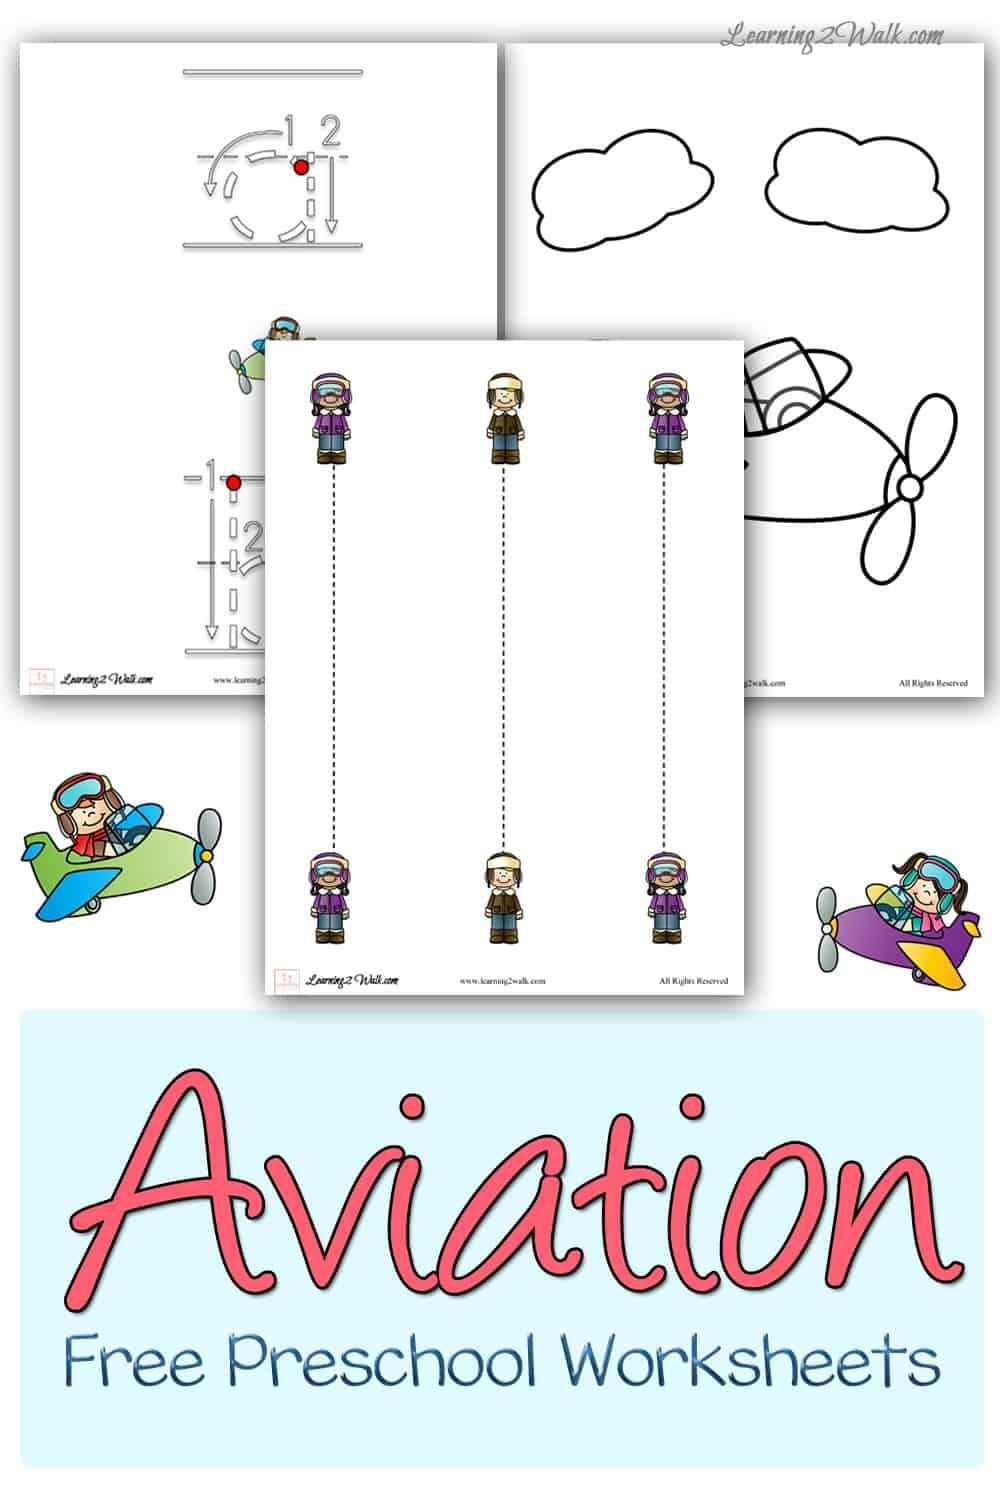 Looking for some aviation free preschool worksheets? This set includes tracing, coloring pages as well as writing pages.